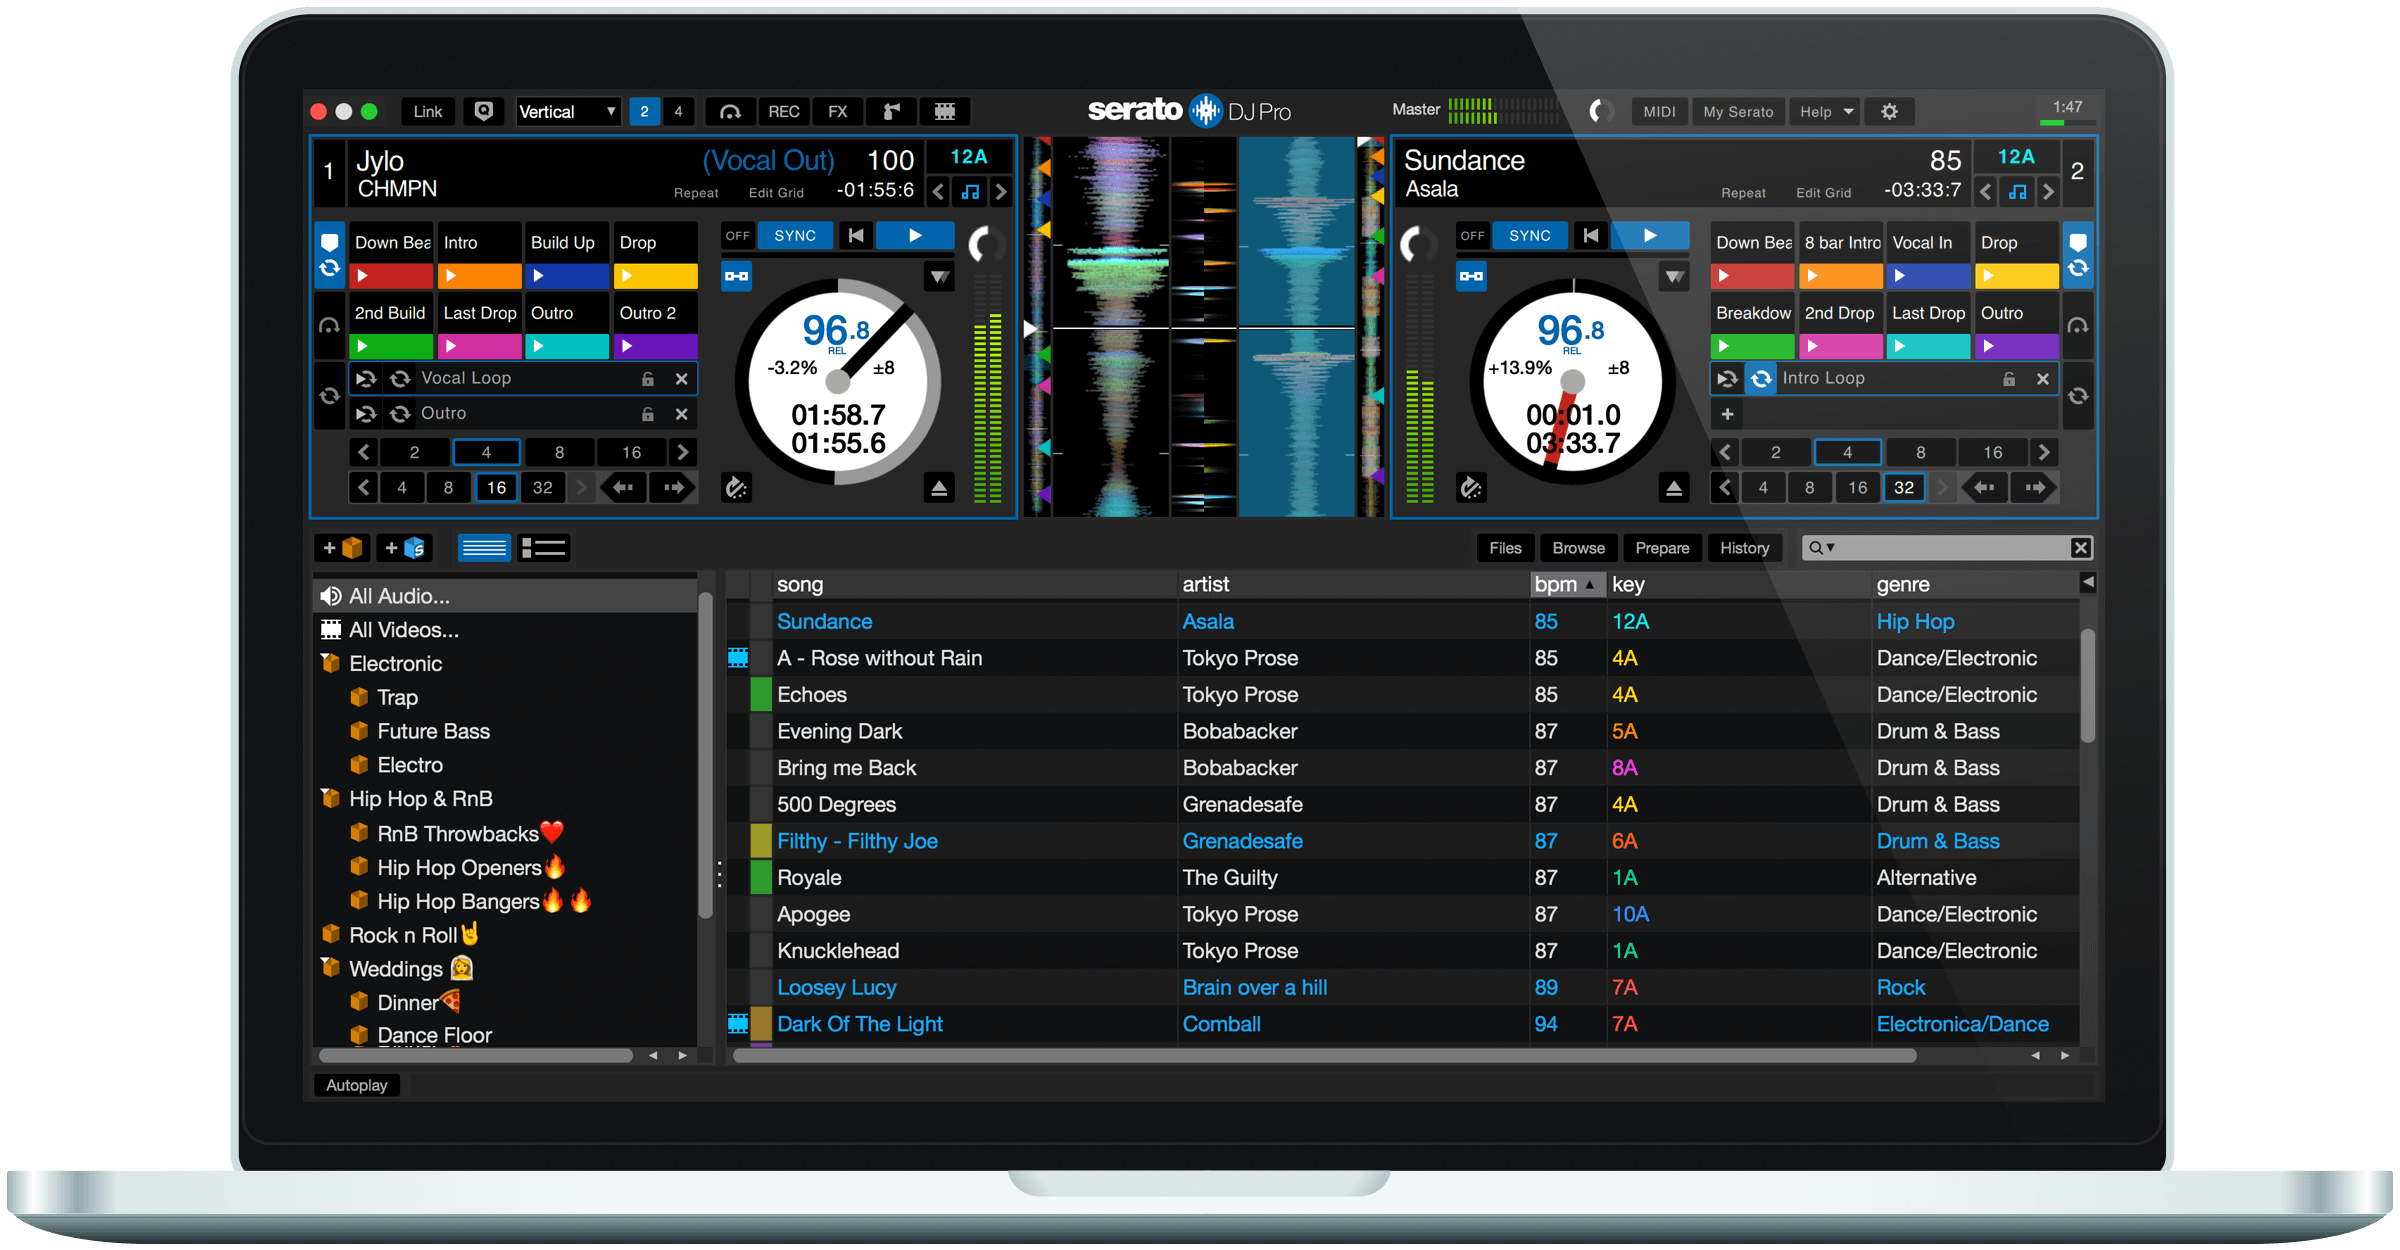 Serato DJ Pro full screenshot